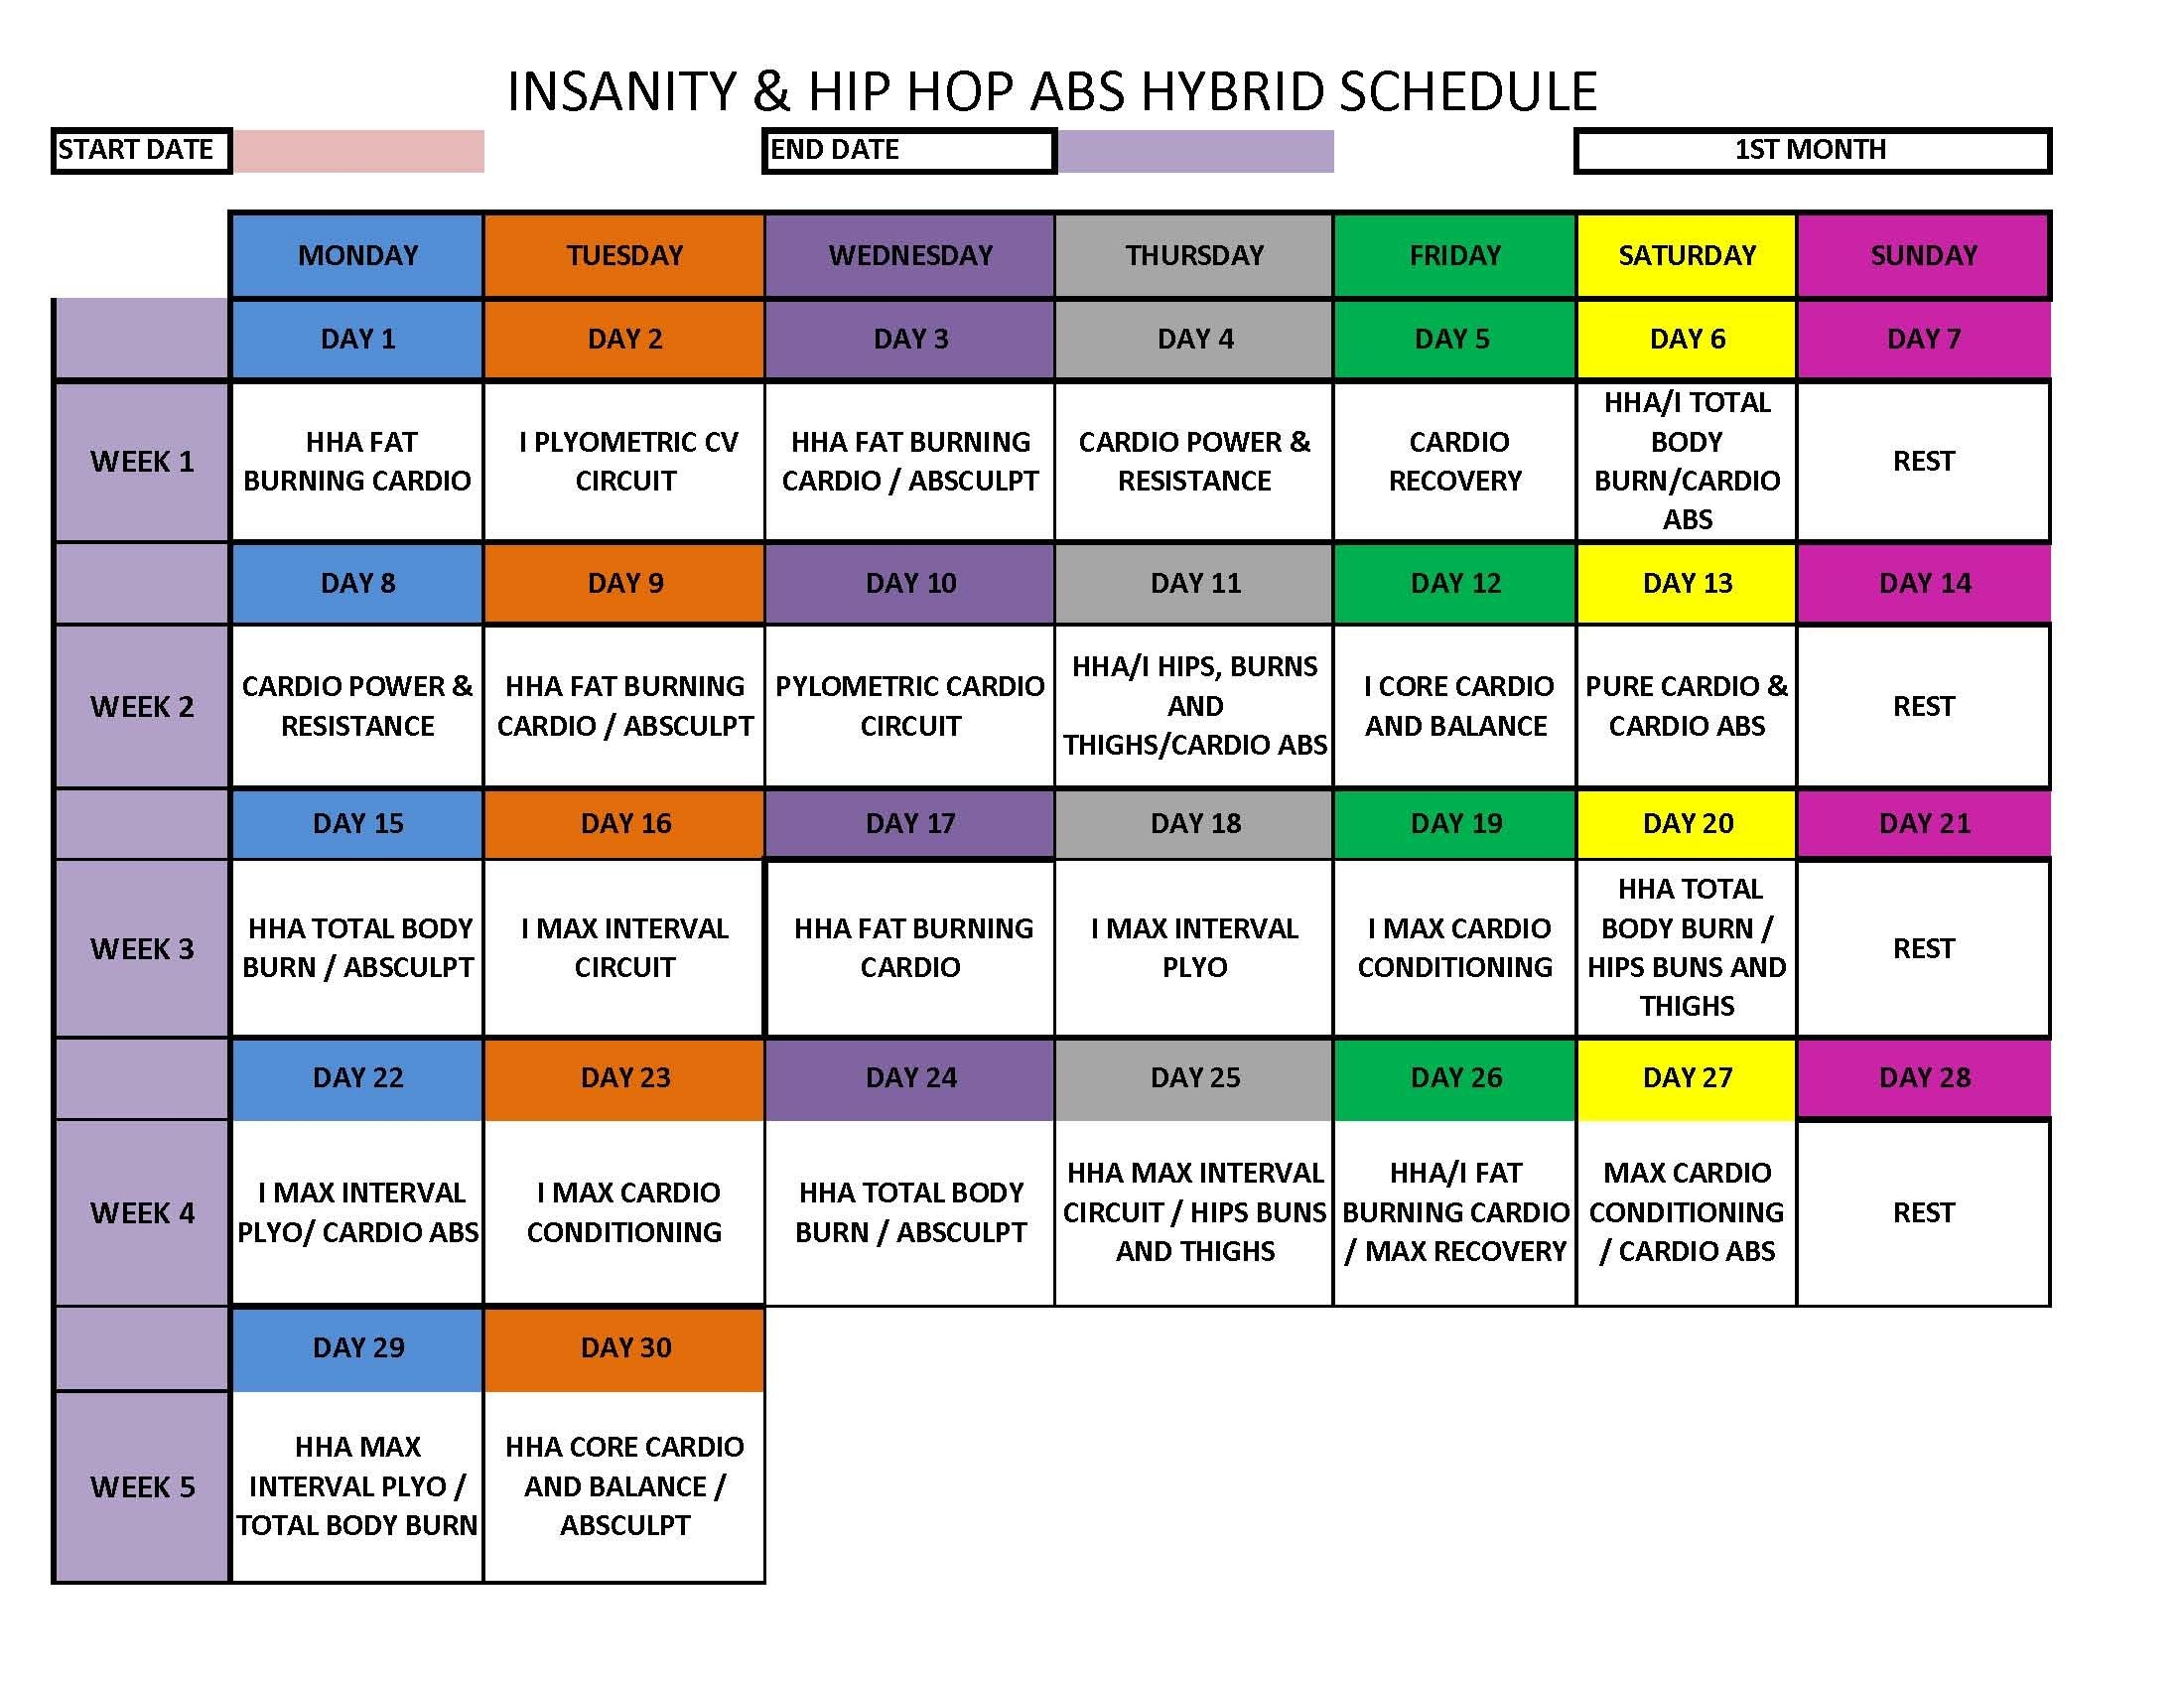 Insanity Hip Hop Abs Hybrid Schedule Insanity Pinterest  Xjb